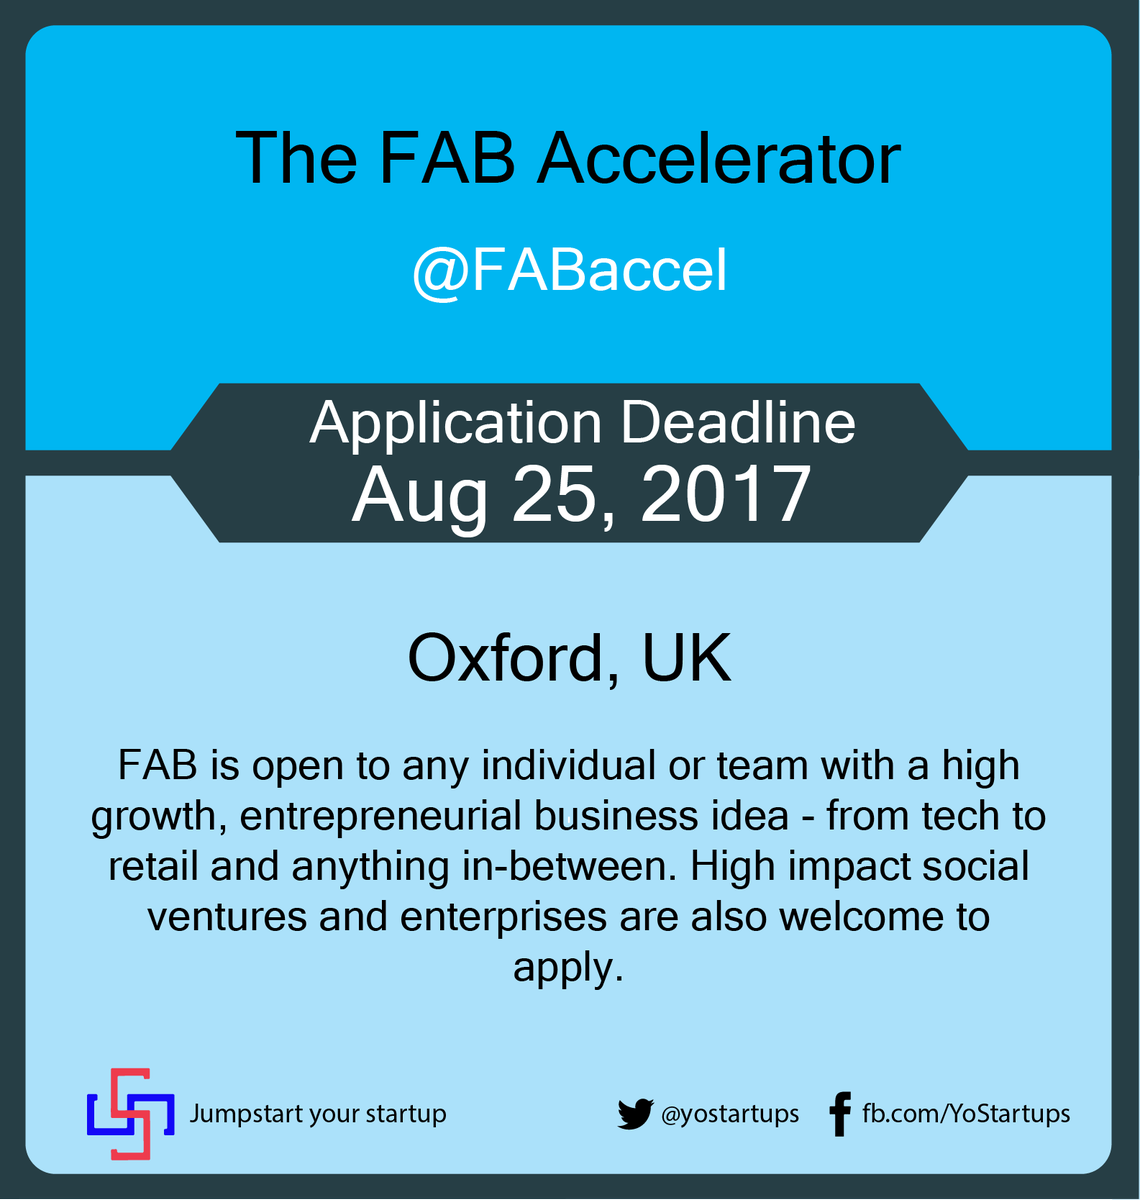 Checkout @FABaccel to raise investment with Oxford&#39;s leading startup programme #accelerator #yostartups  https:// goo.gl/FE7Qm5  &nbsp;  <br>http://pic.twitter.com/BL40F5w4mr